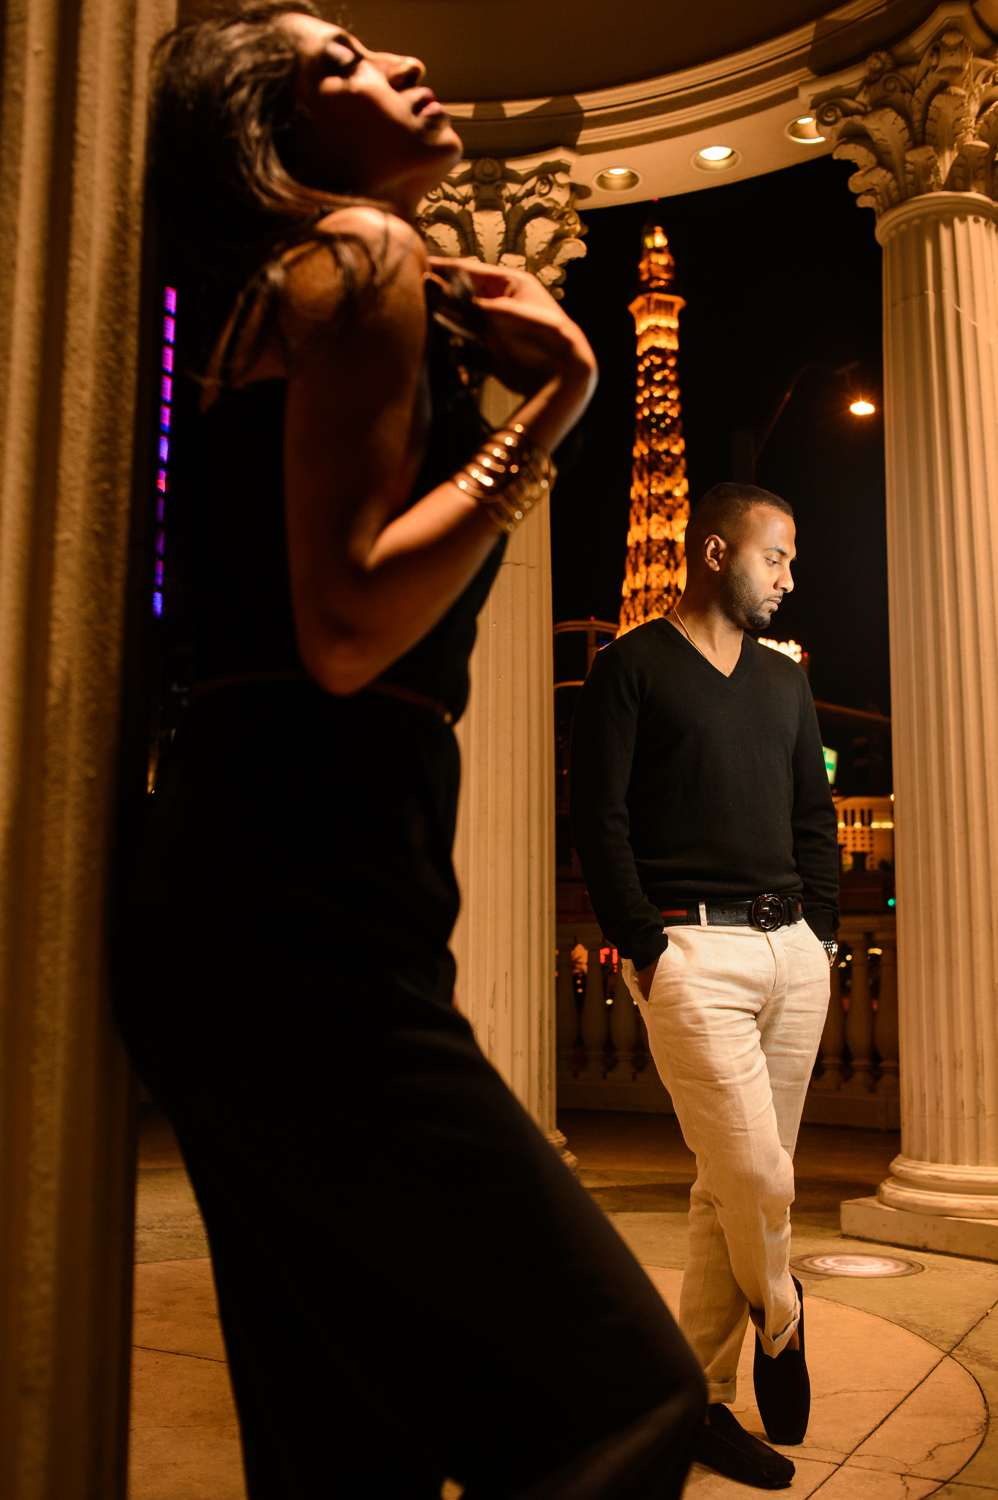 Las-Vegas-Engagement-Session-0044.JPG